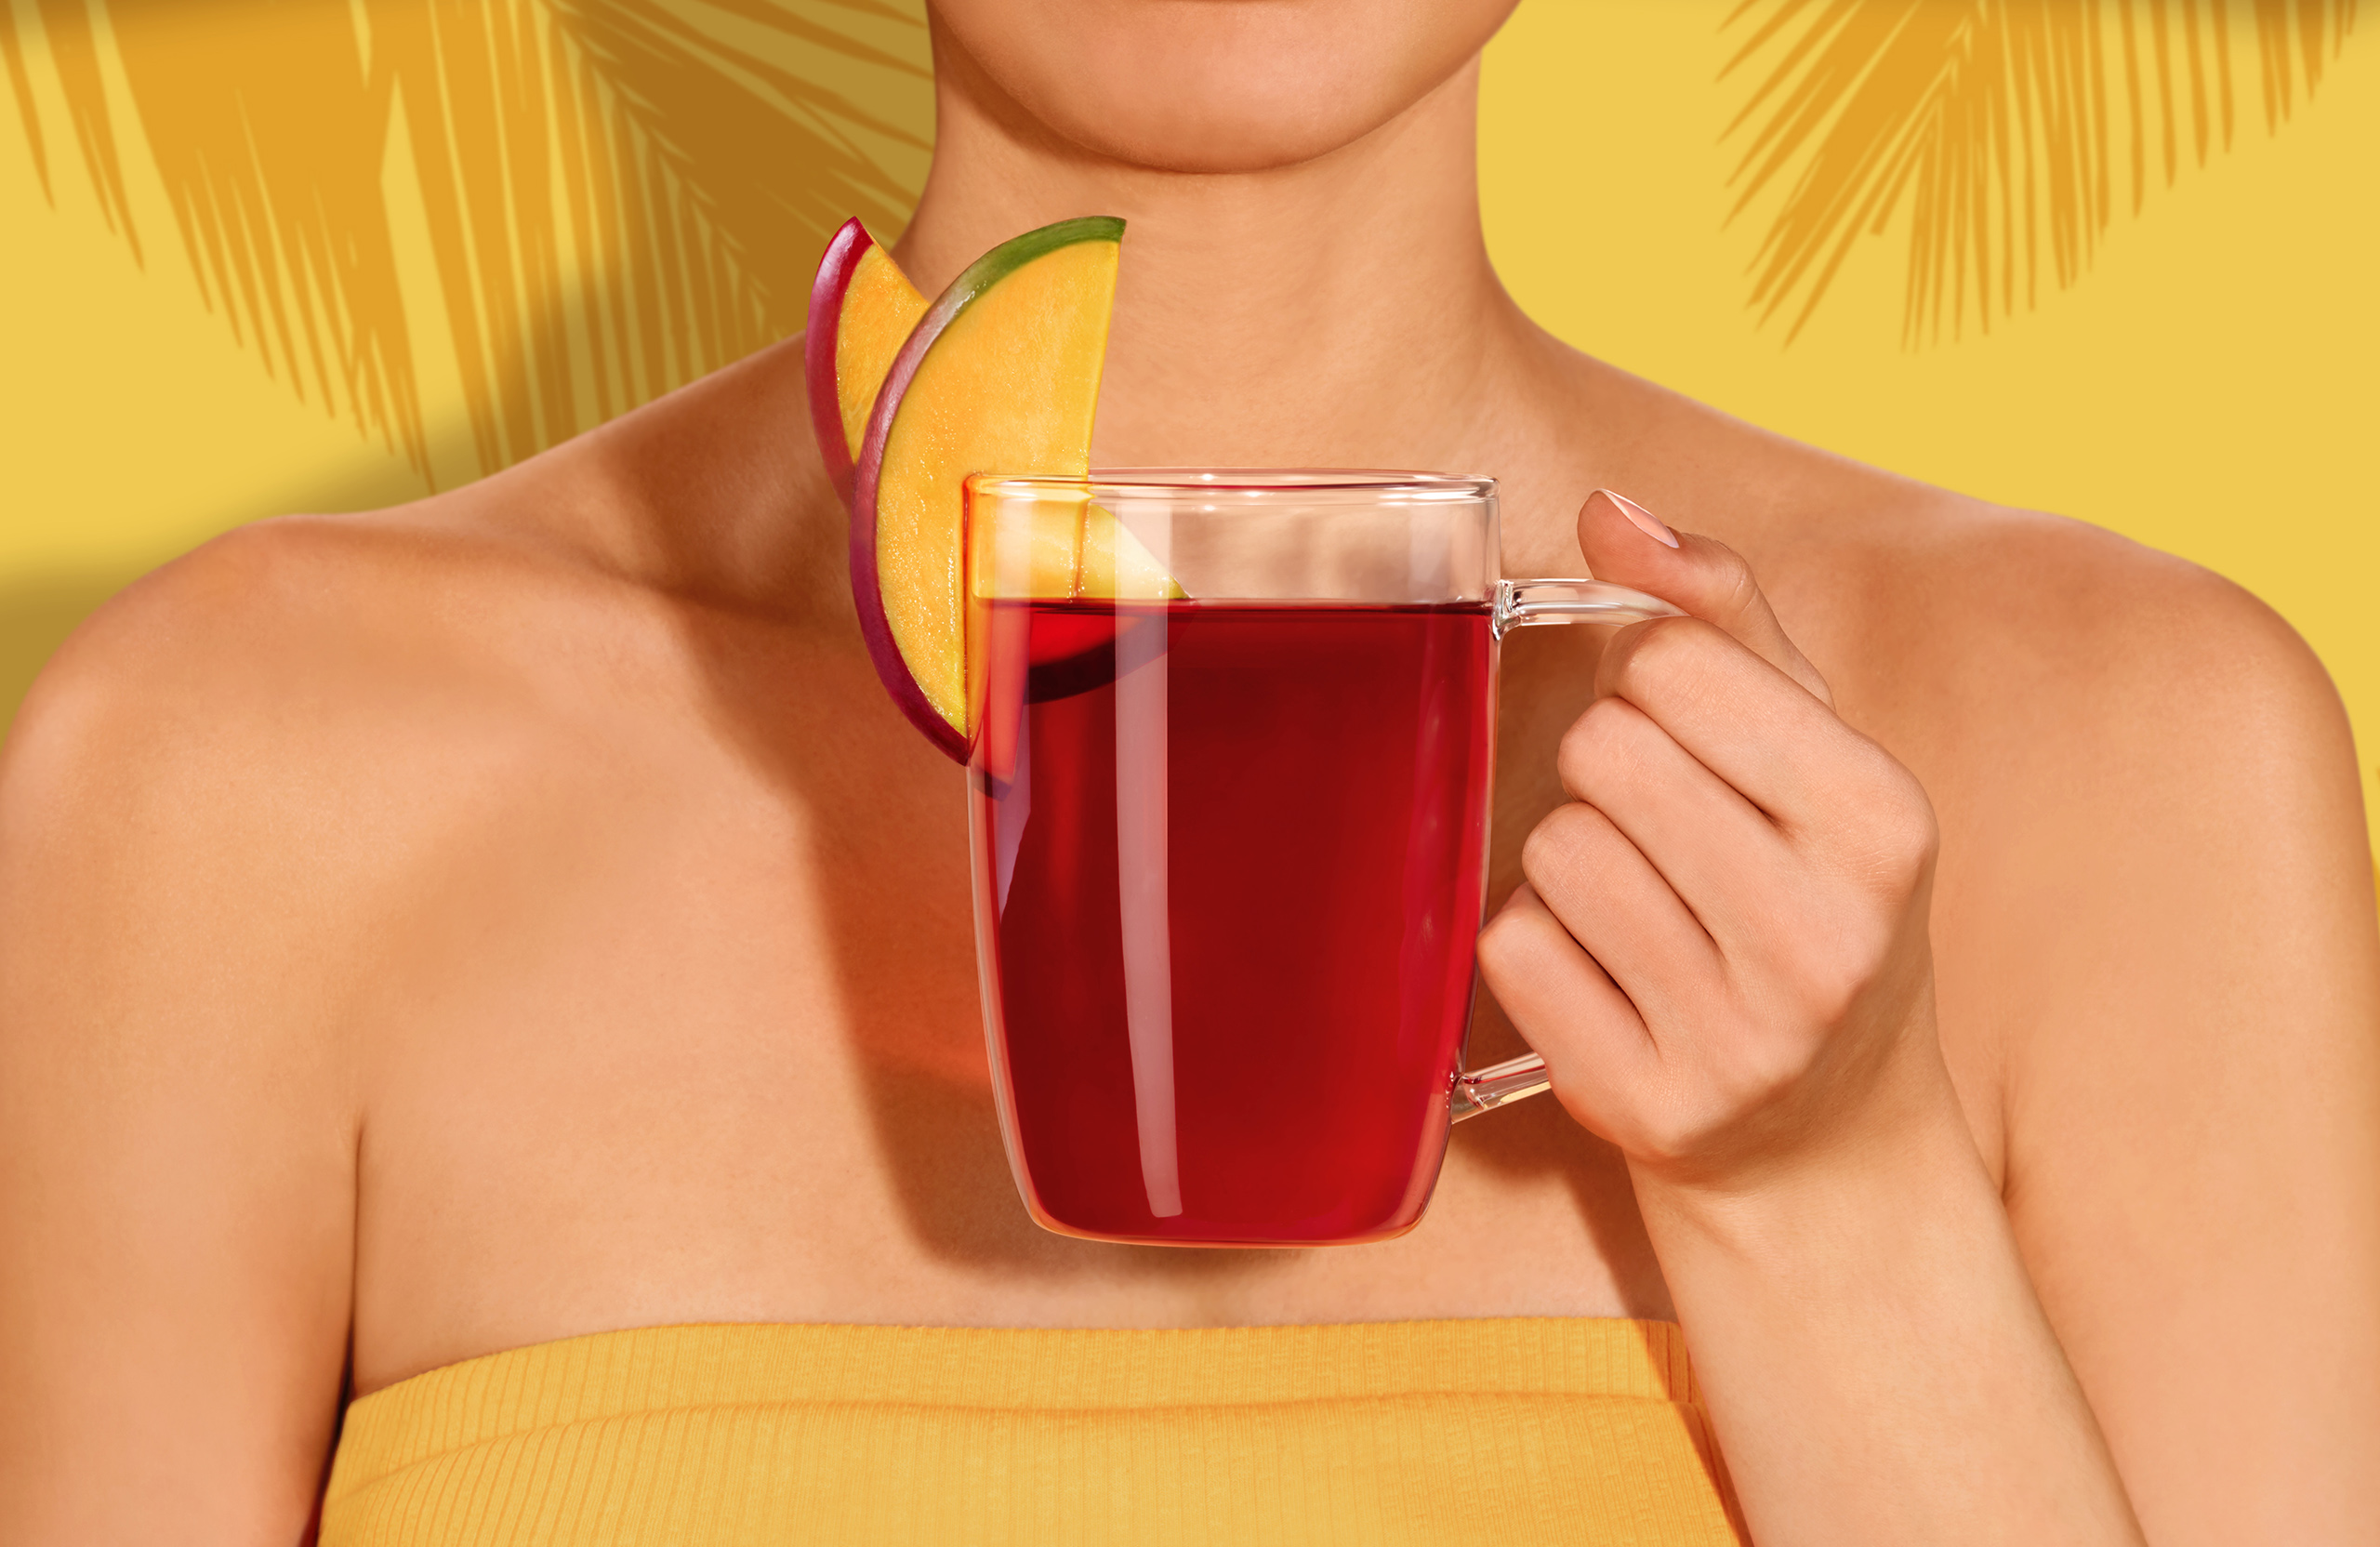 Commercial photography for Kusmi Tea of a girl with a red beach hat and a yellow dress holding a mug of tea Aquaexotica with slices of mango with a palm tree yellow background retouched by Maria Queralt